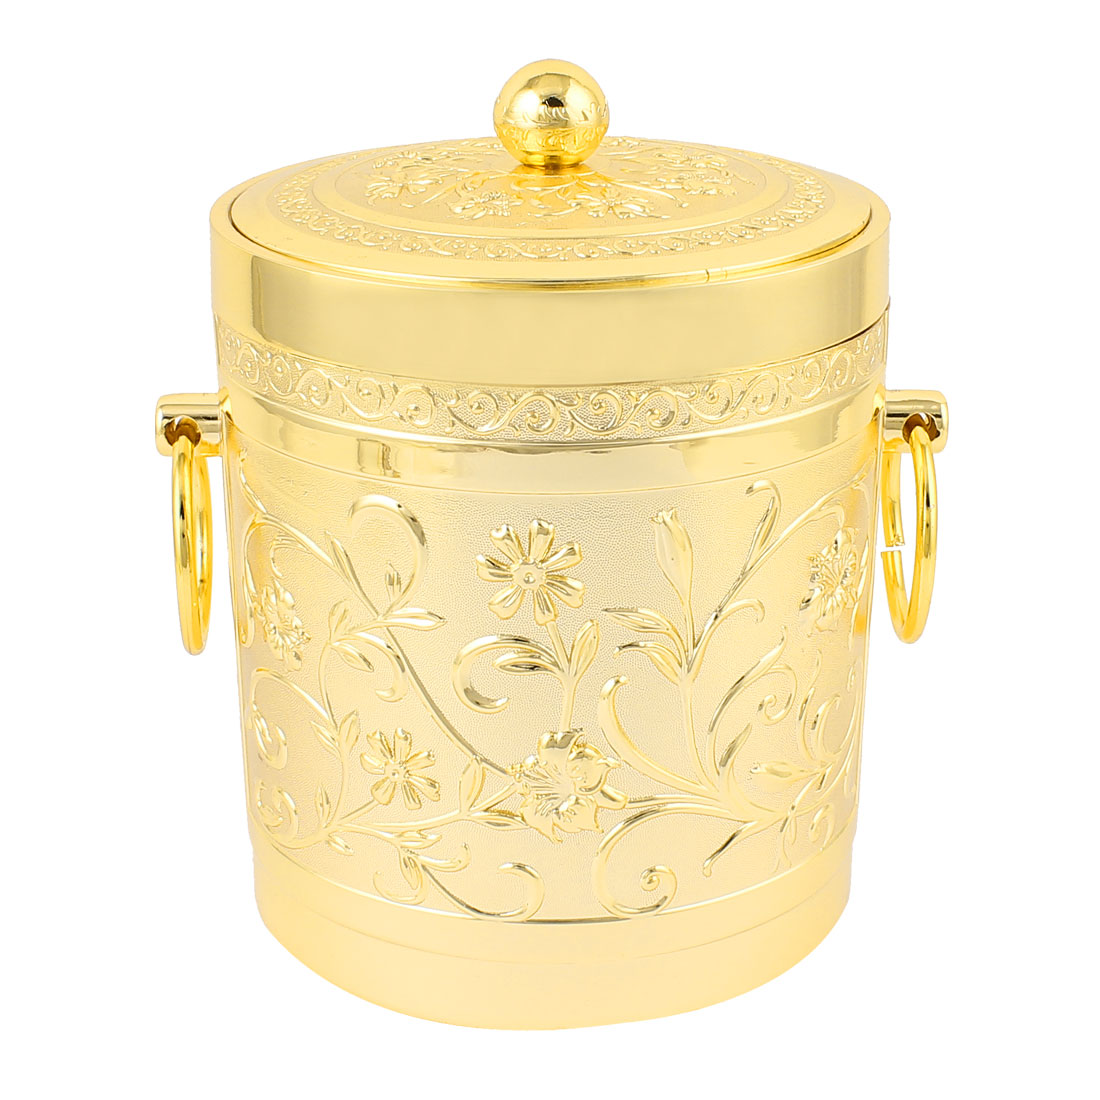 Flower Carved Stainless Steel Ice Bucket w Tongs Gold Tone